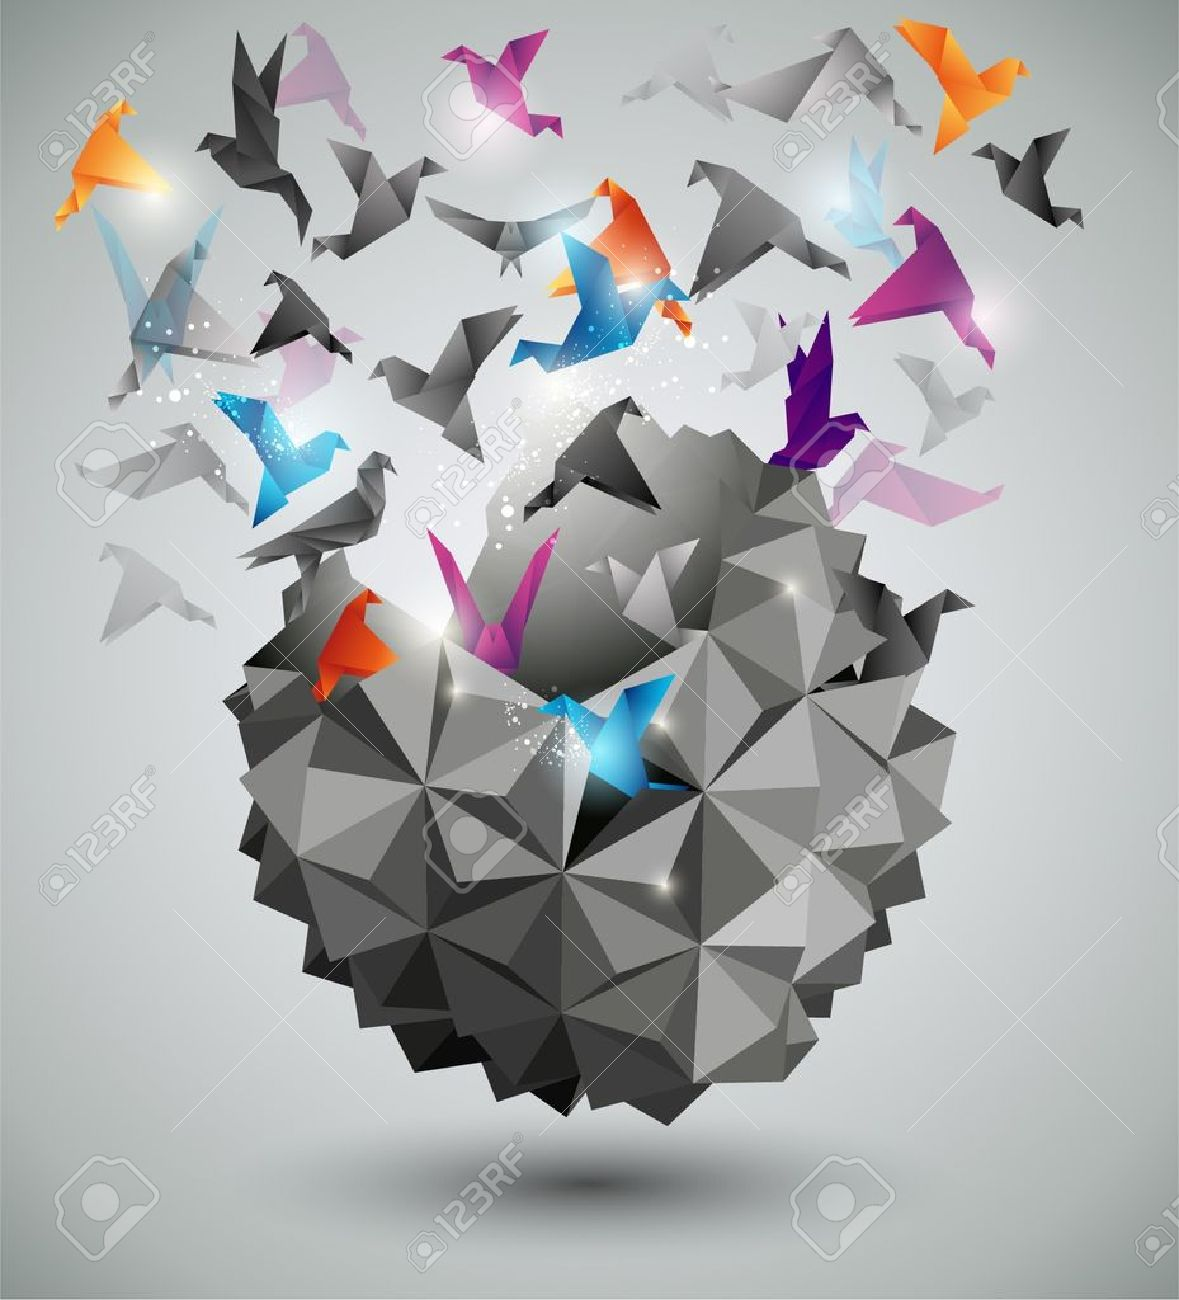 Paper Freedom, Origami abstract vector illustration. Stock Vector - 10933973